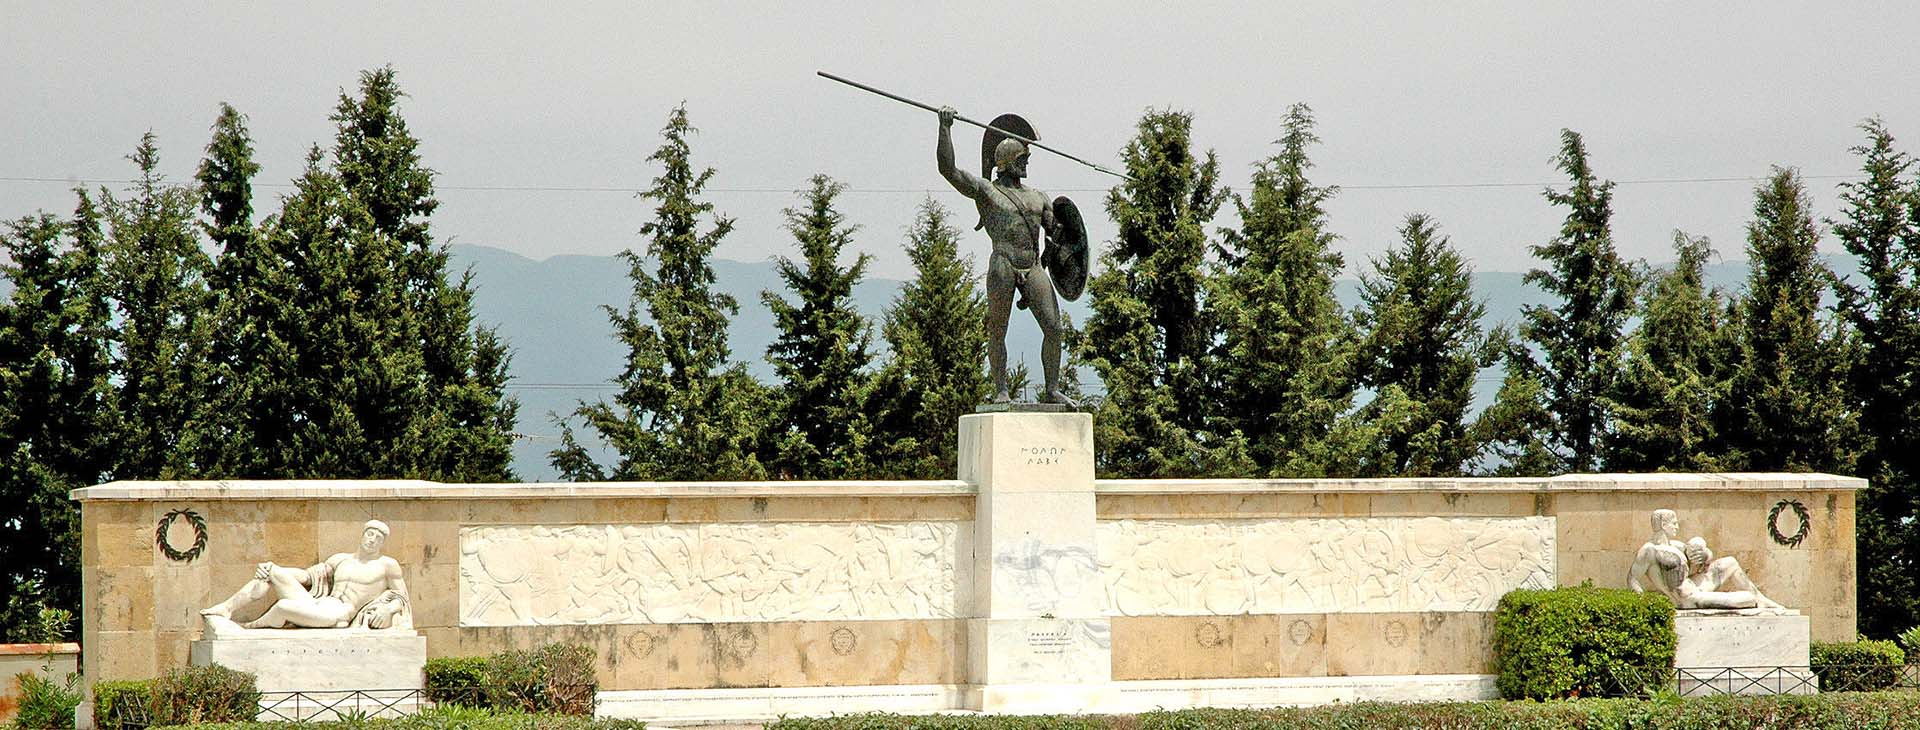 Battle of Thermopylae monument